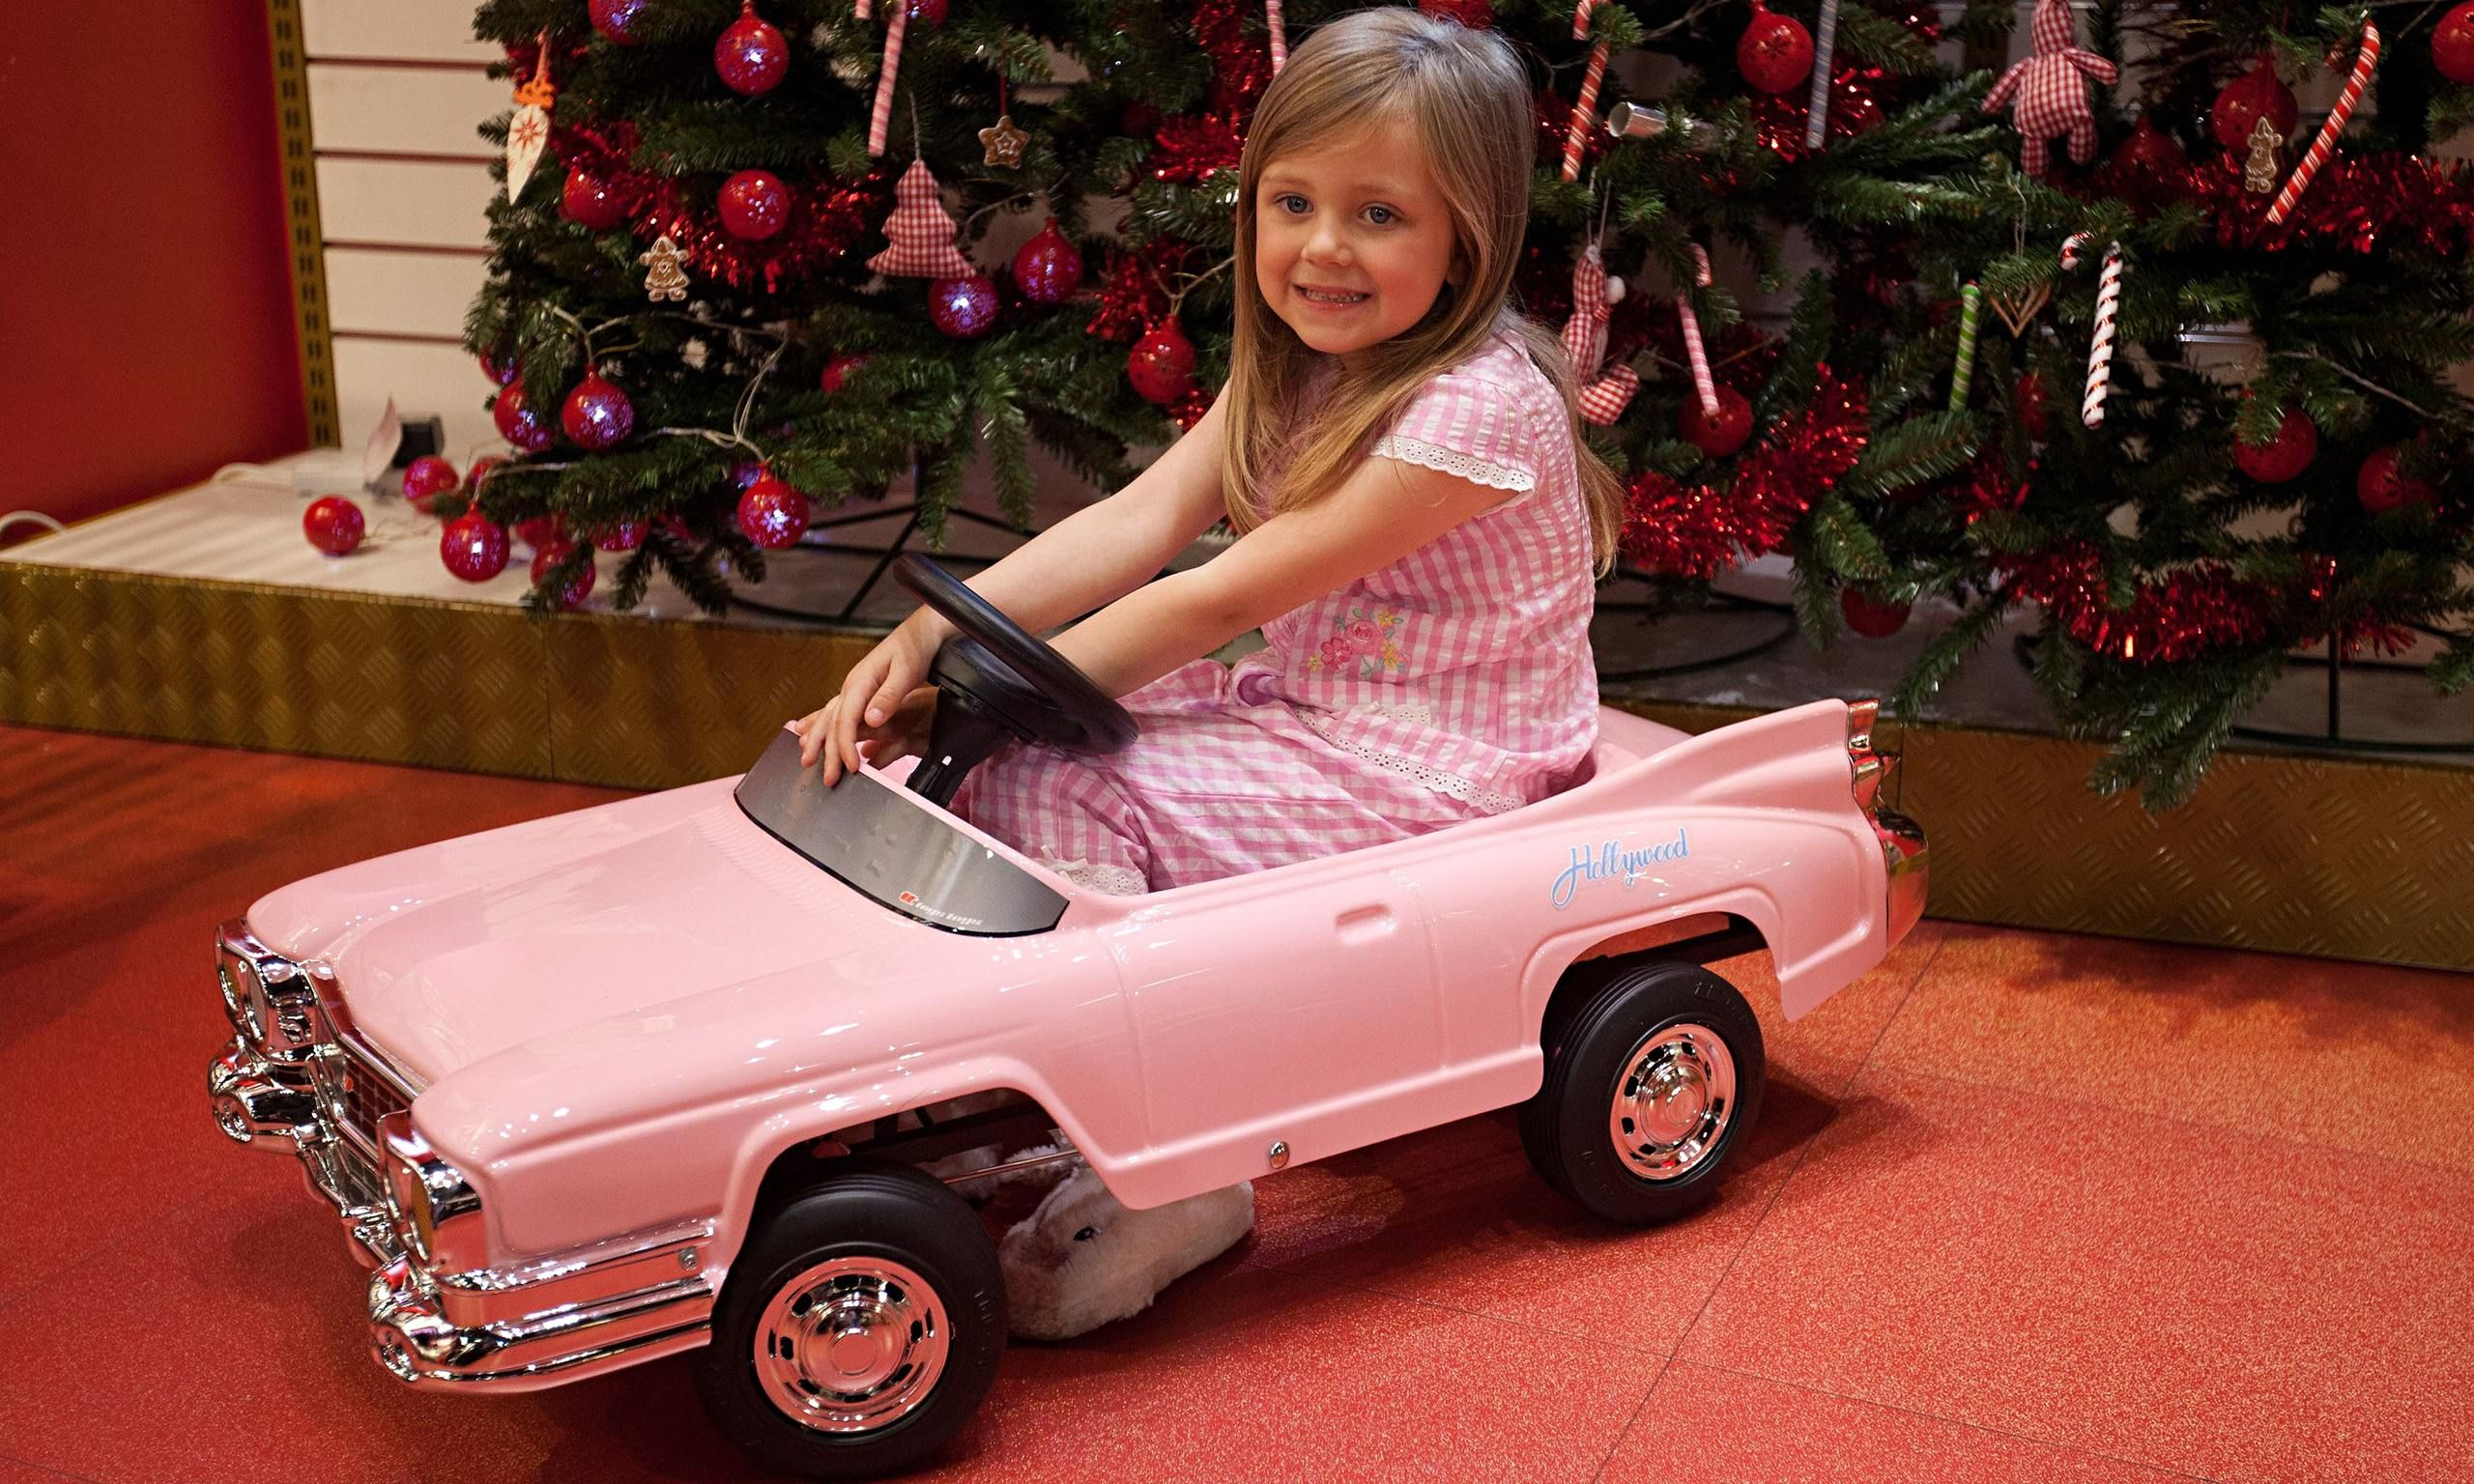 Car toys for girls  The fightback against gendered toys  Gender stereotypes Baby